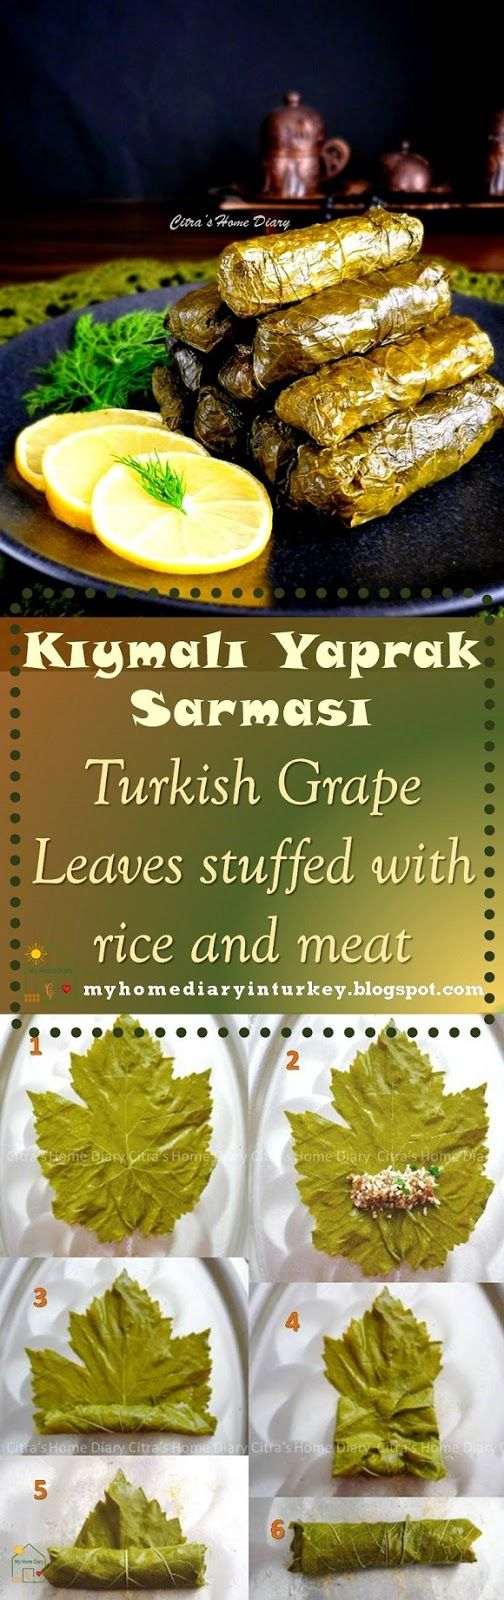 Kıymalı Yaprak Sarması / Turkish Grape Leaves stuffed with rice and meat . #yapraksarma #dolma #turkishdolma #grapeleavesdolma #turkish #appetizer #vegan